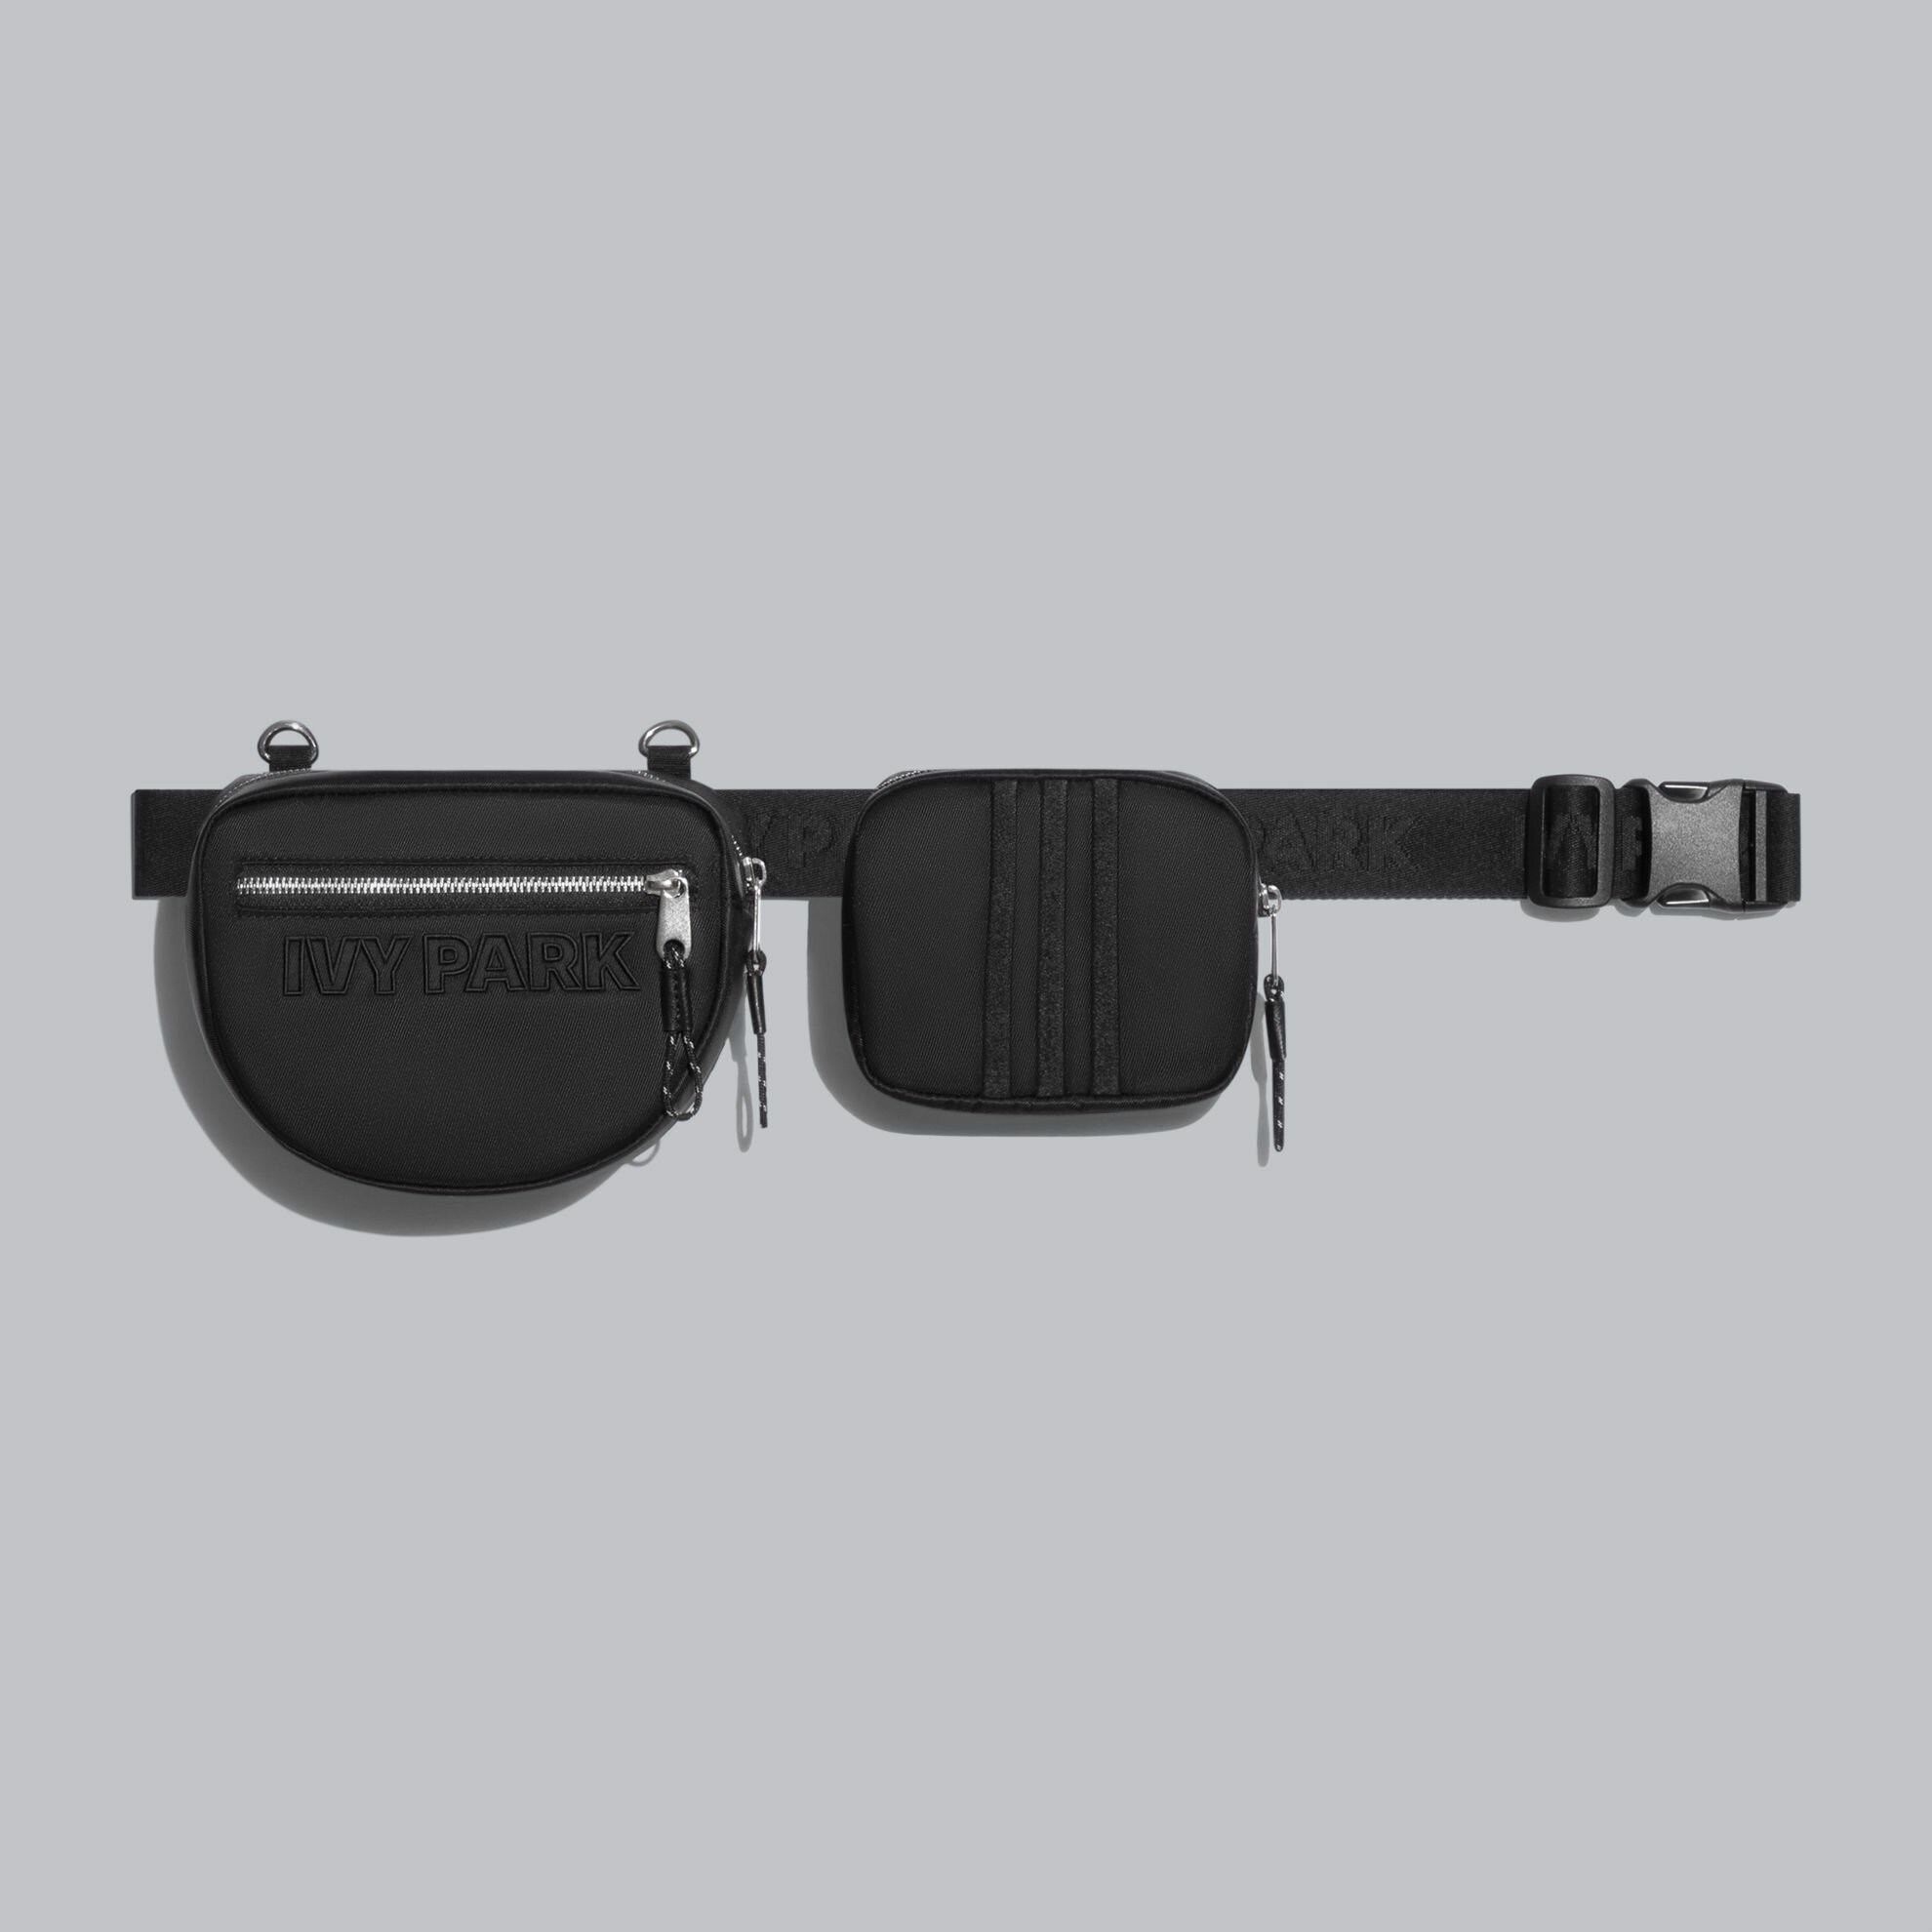 IVY PARK x adidas Belt Bag - Black